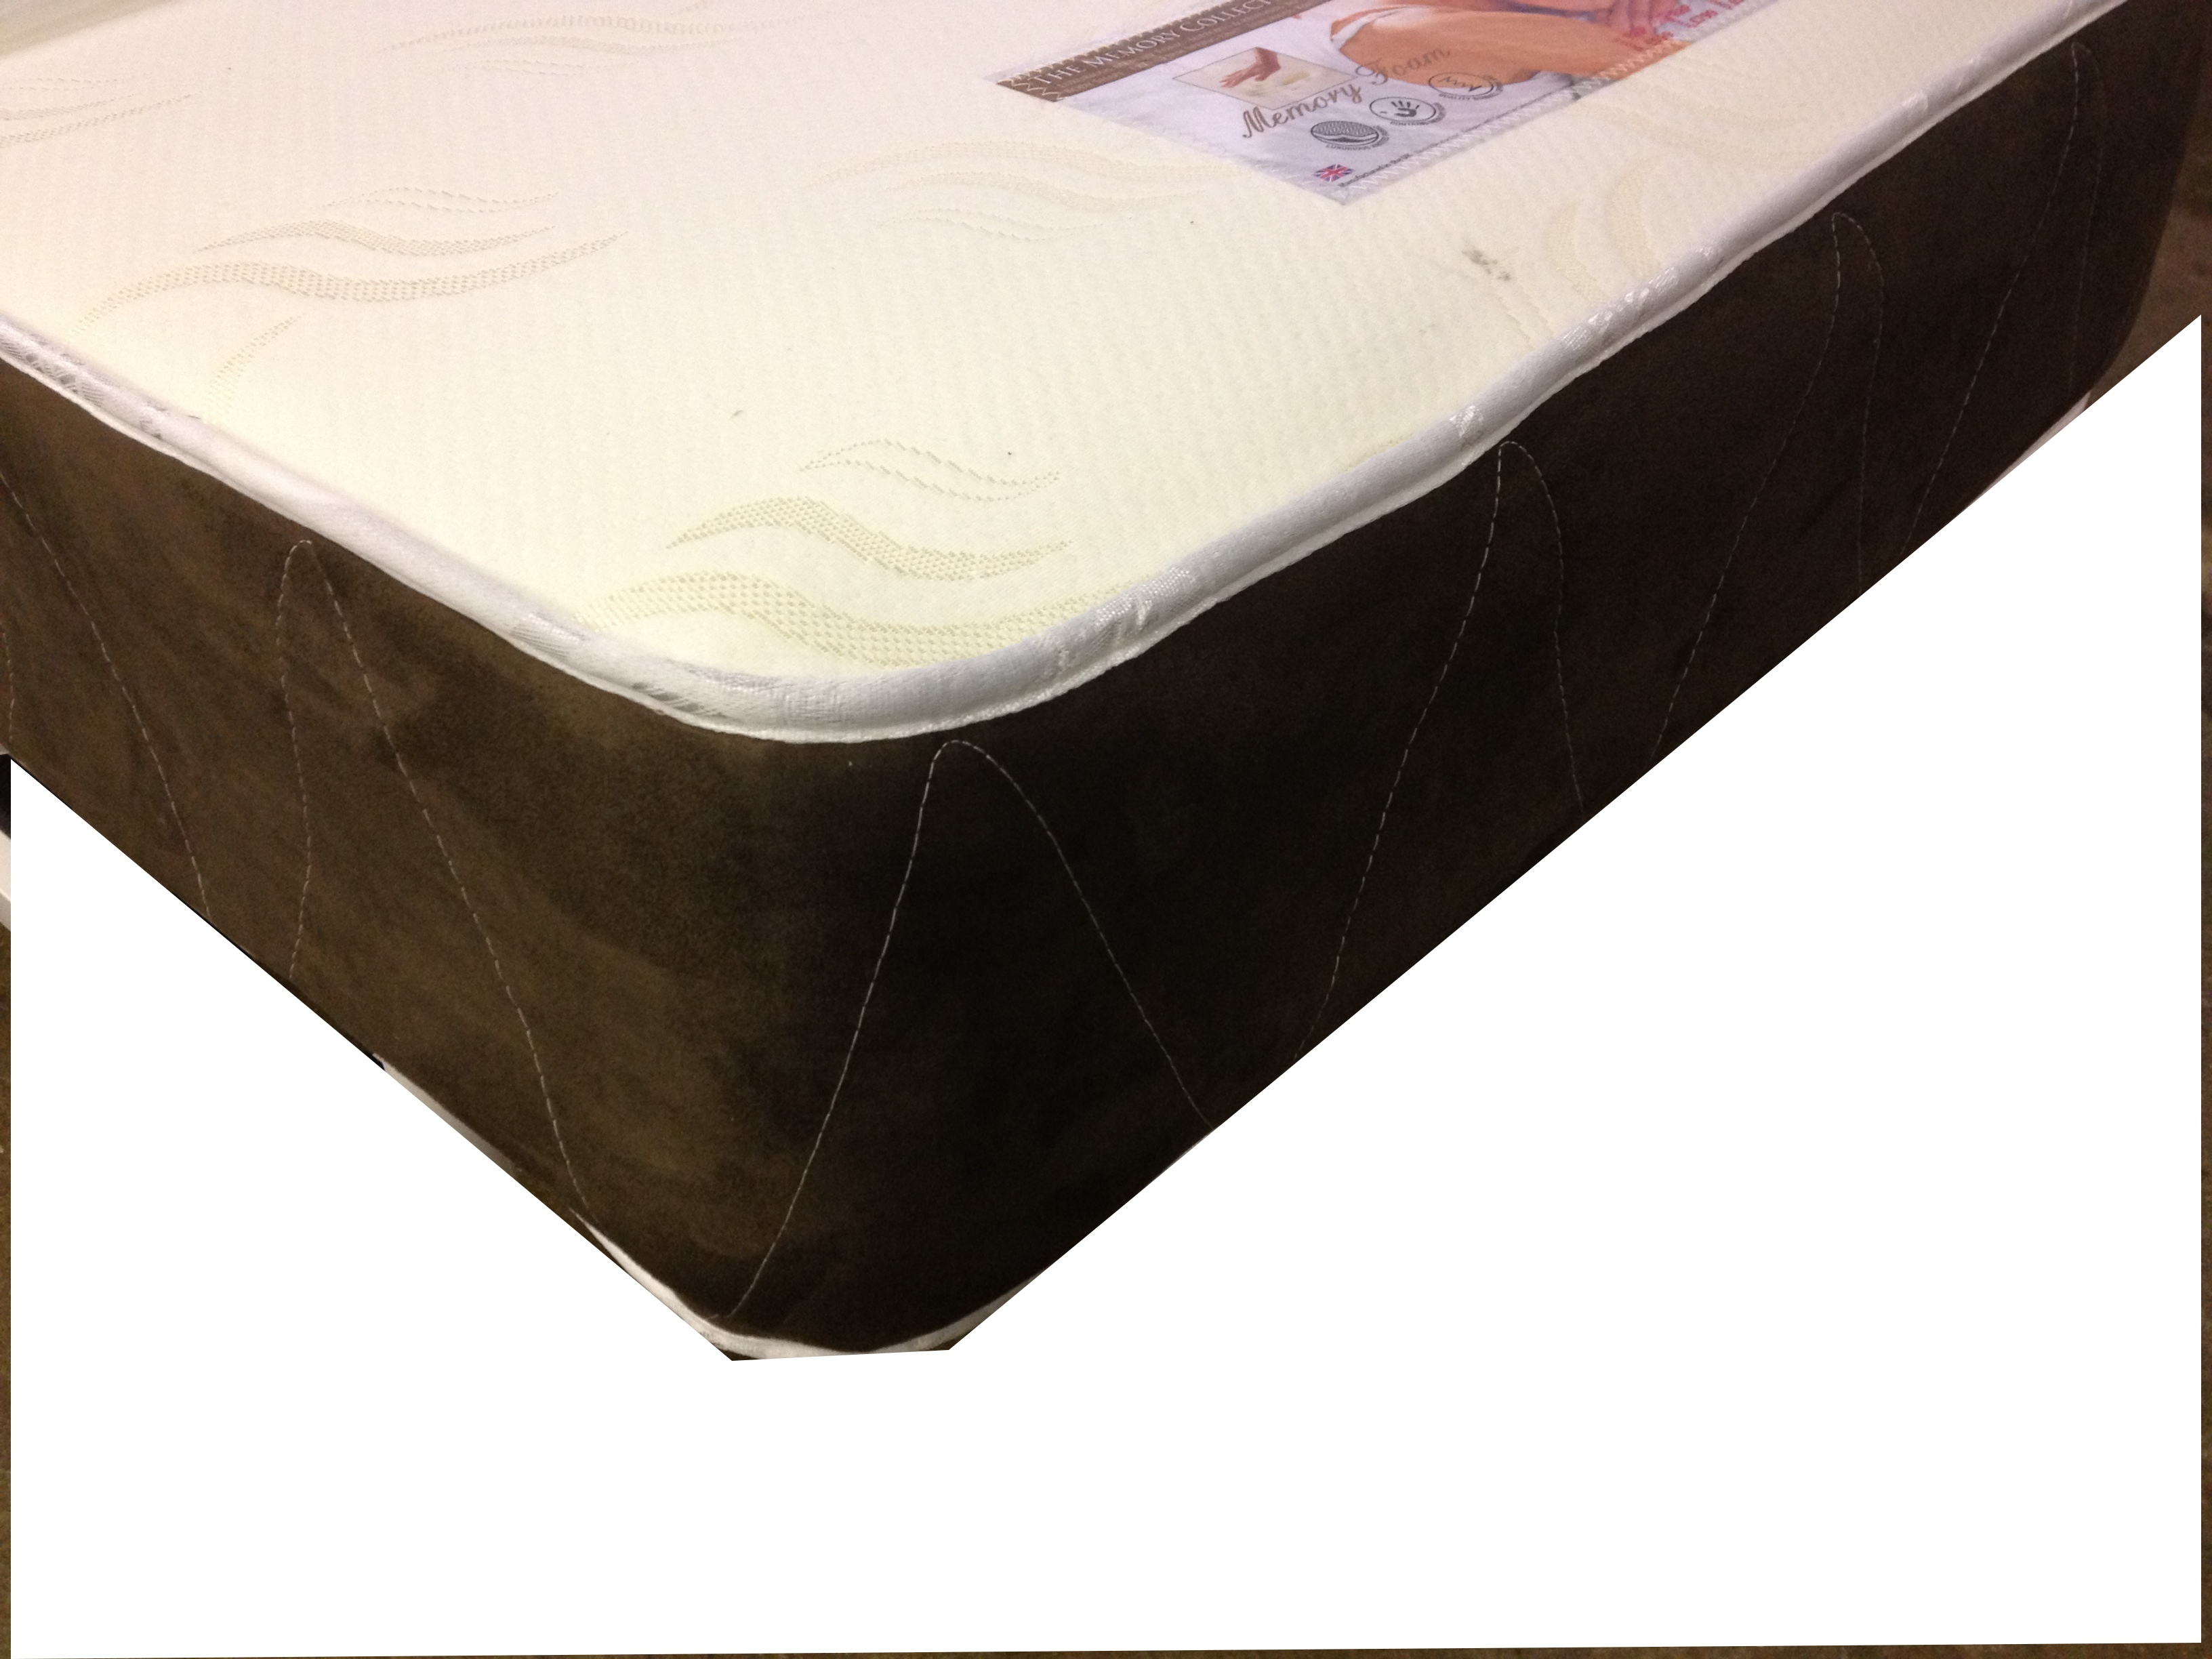 SLEEPTIMES 4ft6 Double Memory Collection Non Turn Memory Foam Mattress £159